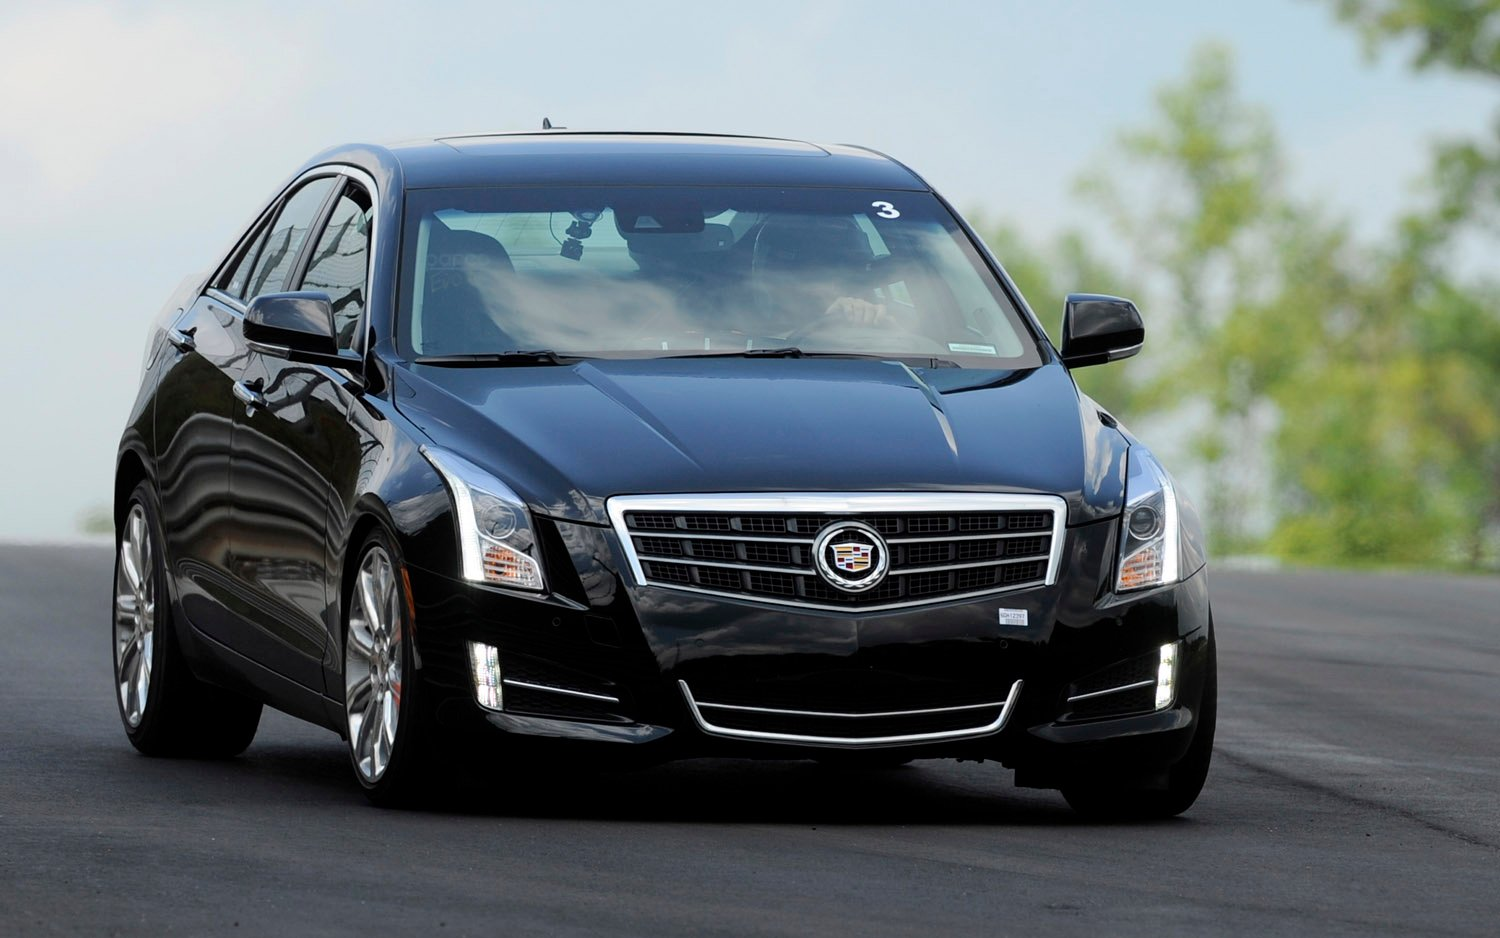 cadillac ats pictures #13